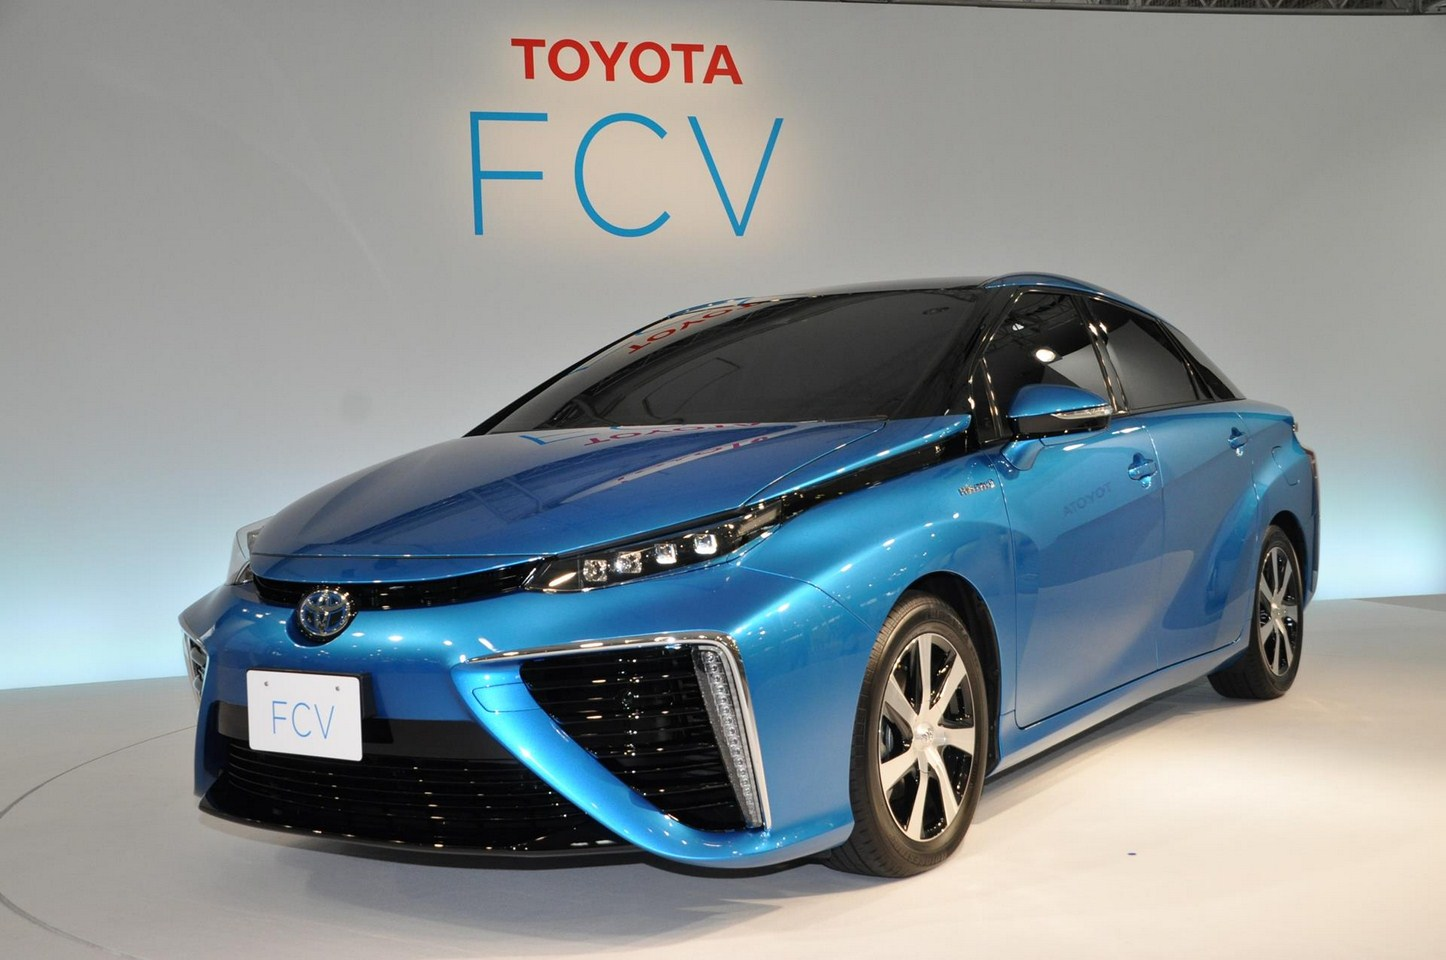 Toyota FCV sedan official image front three quarter